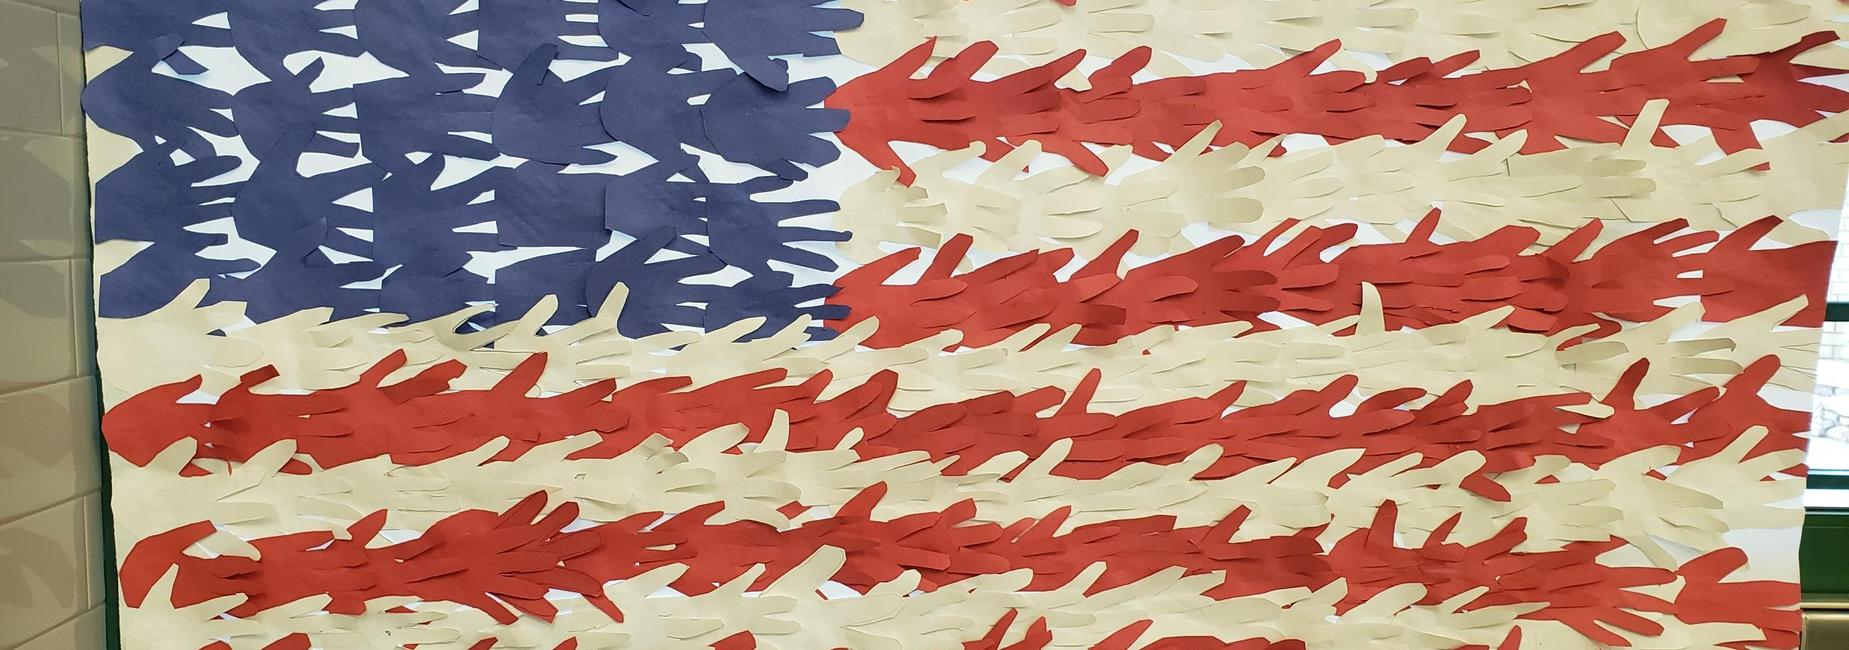 American flag made with student hand prints cut from red, white and blue paper